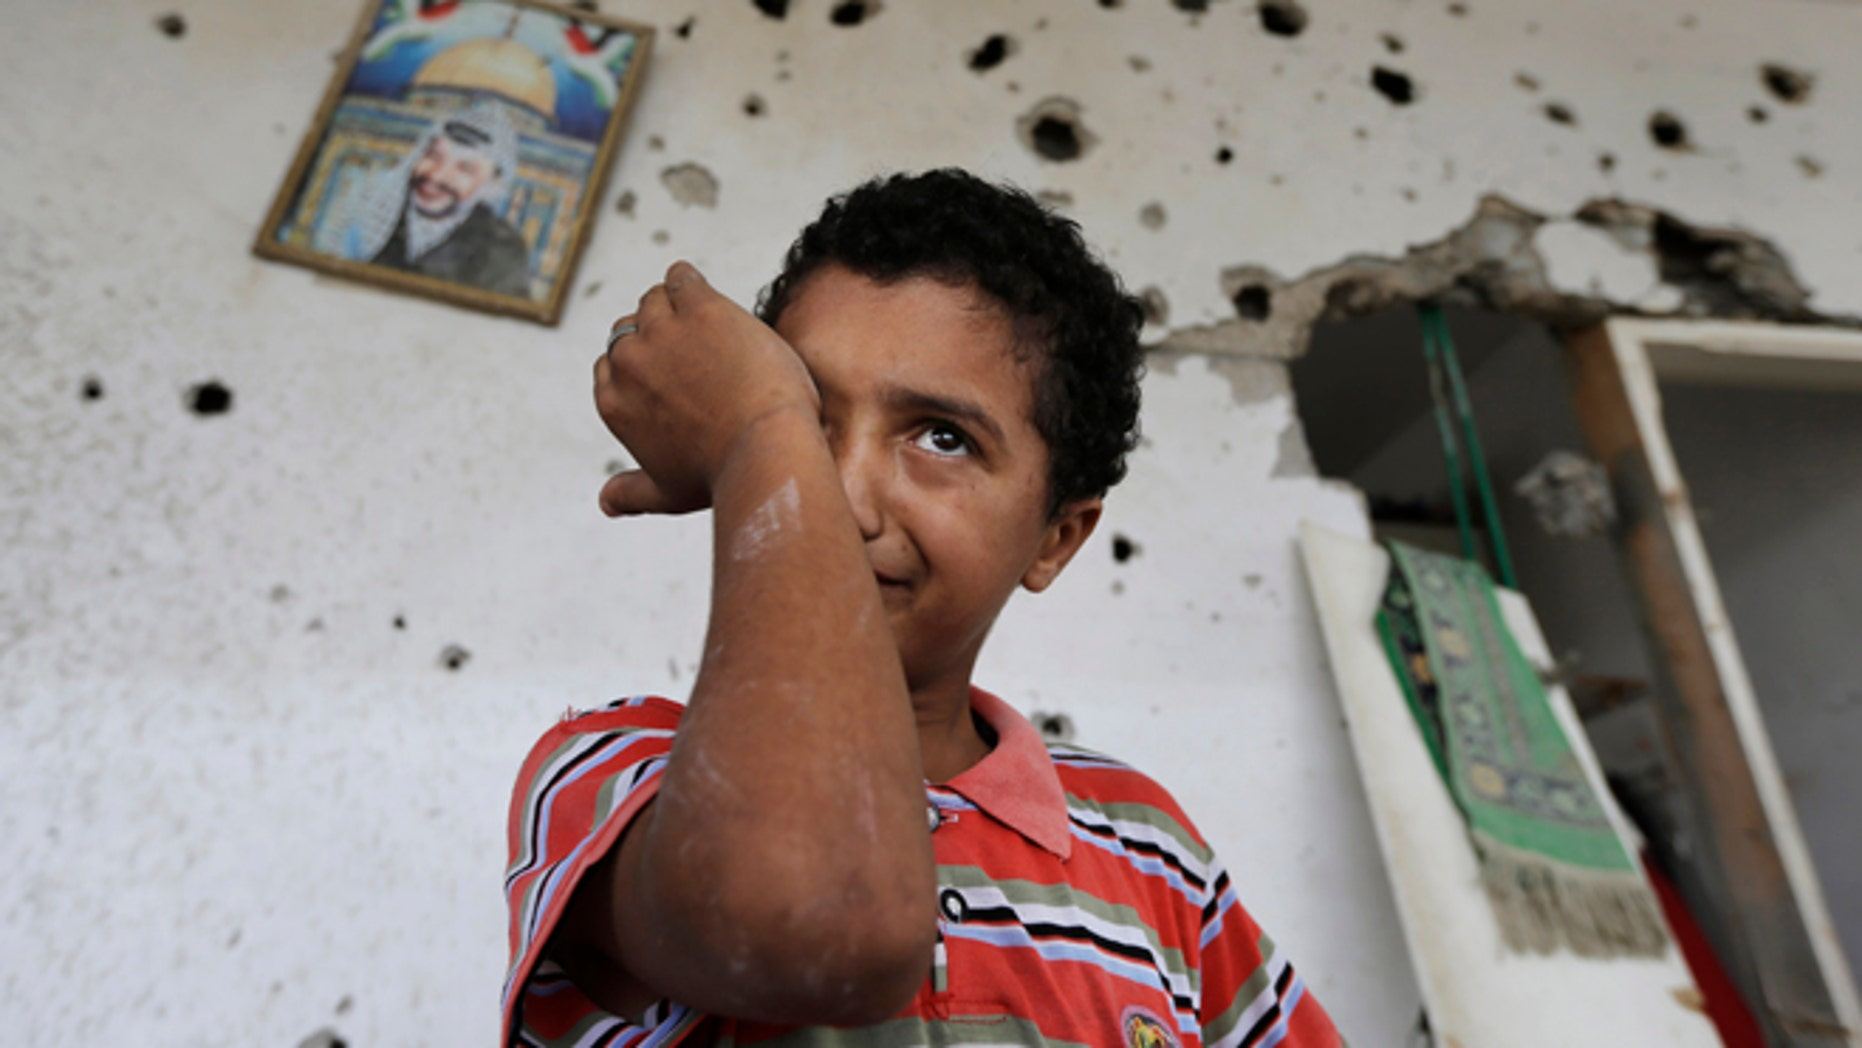 Backdropped by a picture of late Palestinian leader Yasser Arafat, Palestinian Anas Shabat, 10, weeps as he inspects damages upon returning to his family house, destroyed by Israeli strikes in the town of Beit Hanoun, northern Gaza Strip, Tuesday, Aug. 5, 2014. Israel and Hamas began observing a temporary cease-fire on Tuesday that sets the stage for talks in Egypt on a broader deal on the Gaza Strip, including a sustainable truce and the rebuilding of the battered, blockaded coastal territory. (AP Photo/Lefteris Pitarakis)